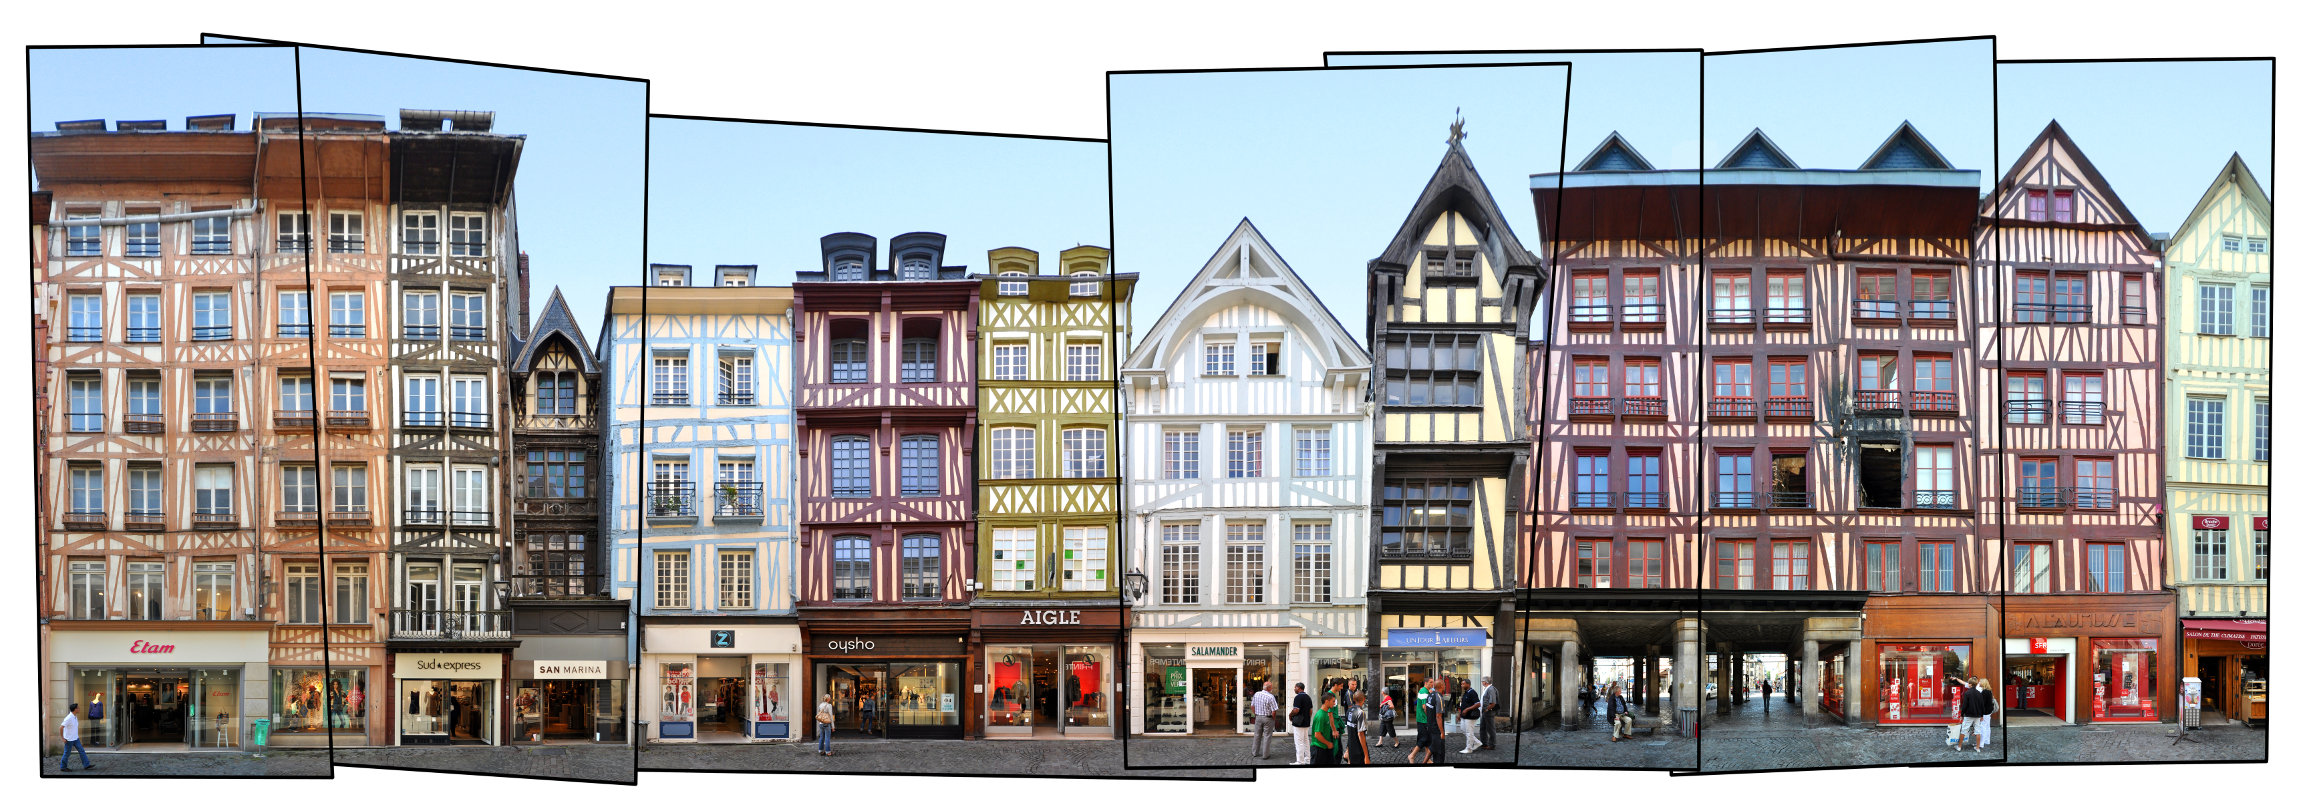 Rouen Architecture Panorama